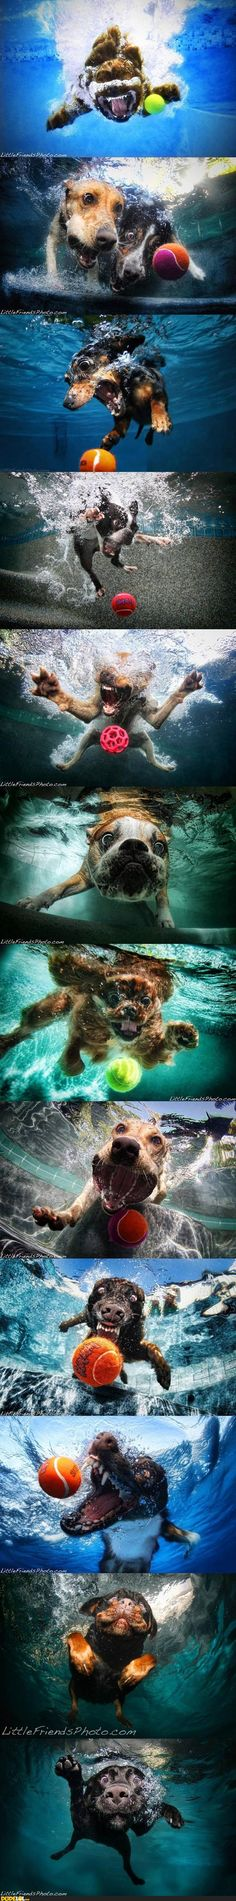 Dogs Diving Underwater - this brings back memories of Taffy and Khaki at my grandparents pool.